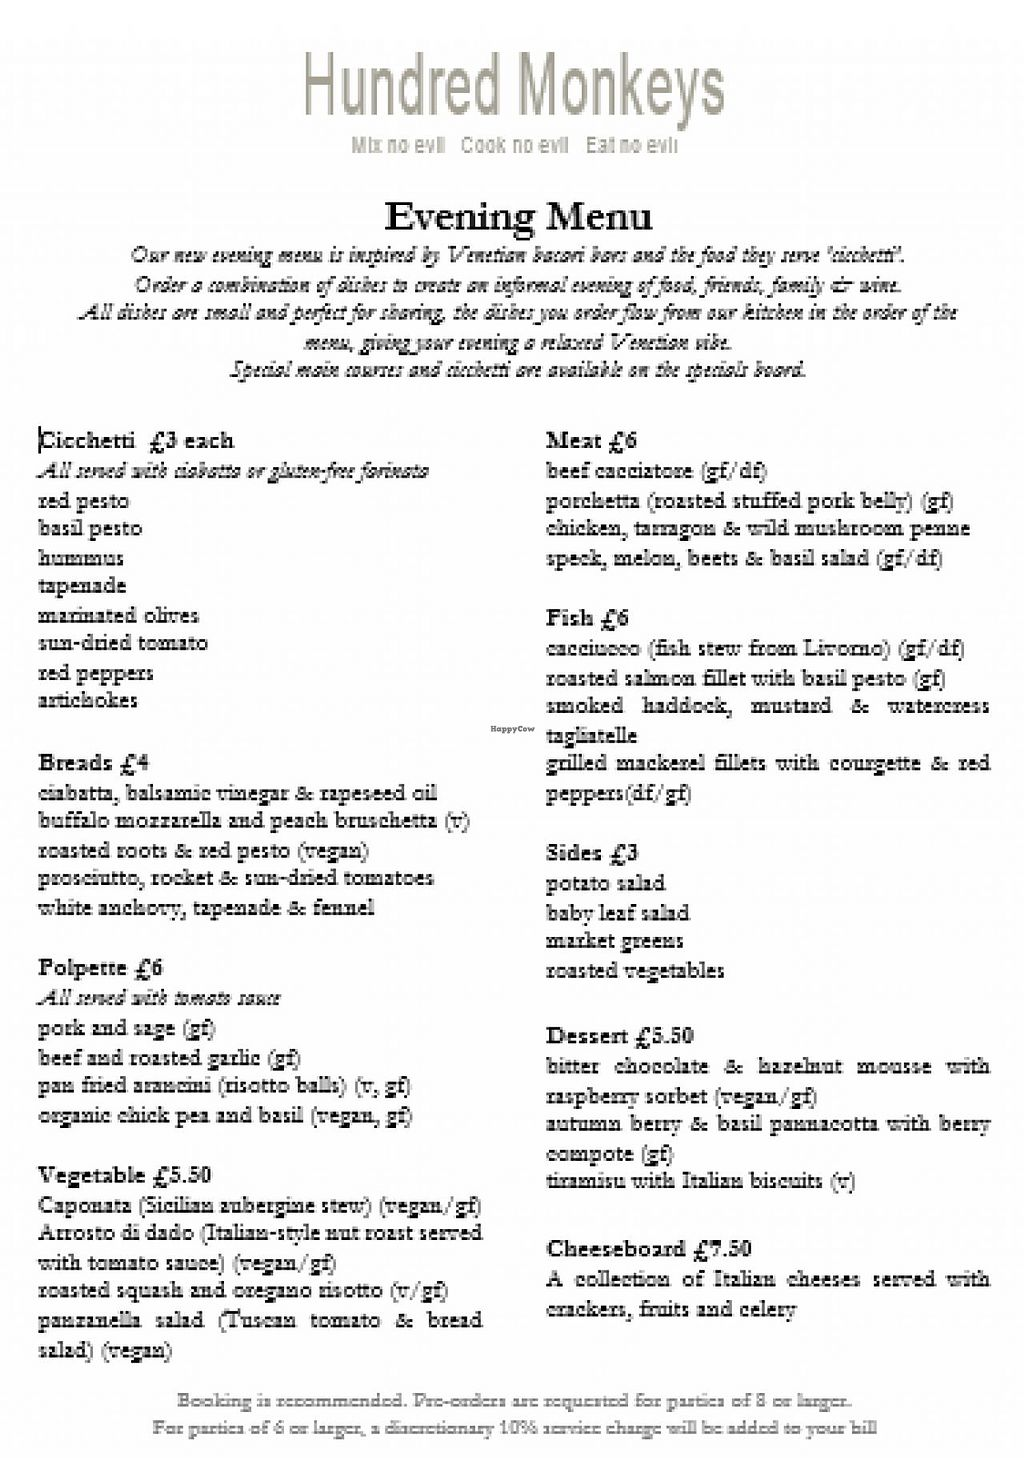 """Photo of Hundred Monkeys Cafe  by <a href=""""/members/profile/trinitybourne"""">trinitybourne</a> <br/>Latest Hundred Monkeys menu Sept 2014 with clearly labelled vegan and gluten free options <br/> September 12, 2014  - <a href='/contact/abuse/image/21952/79654'>Report</a>"""